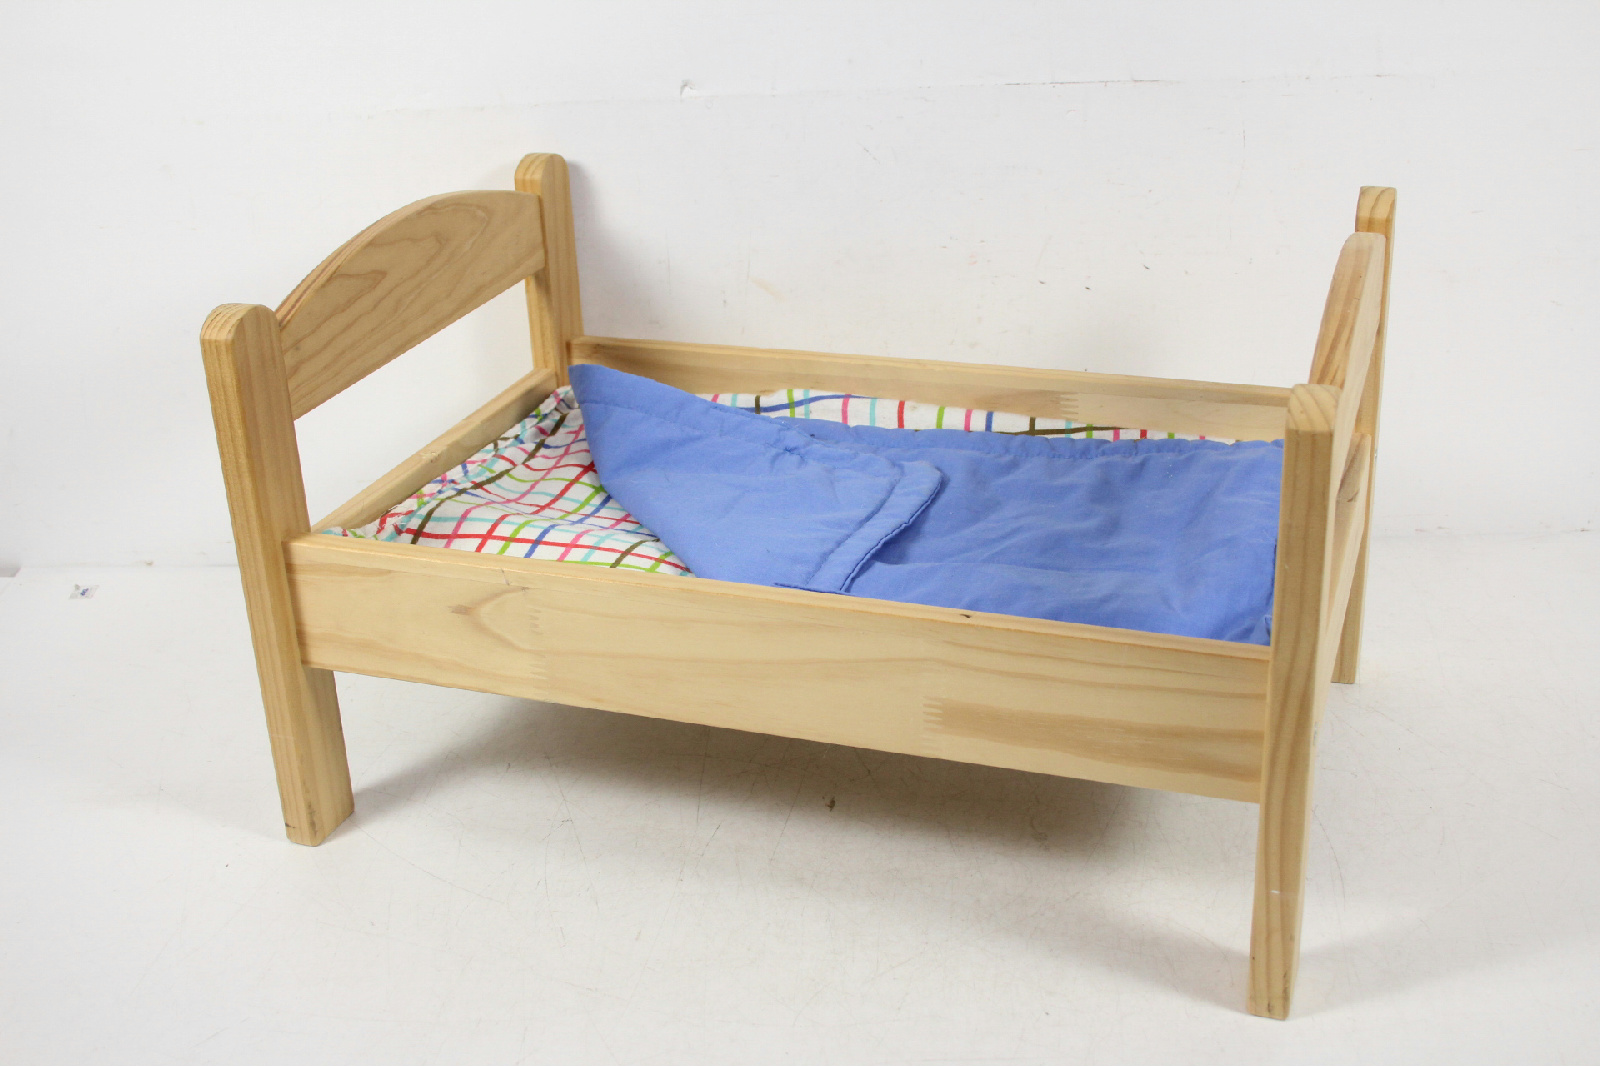 Ikea wood wooden doll toy bed with linen kitty american for Ikea wooden bunk beds